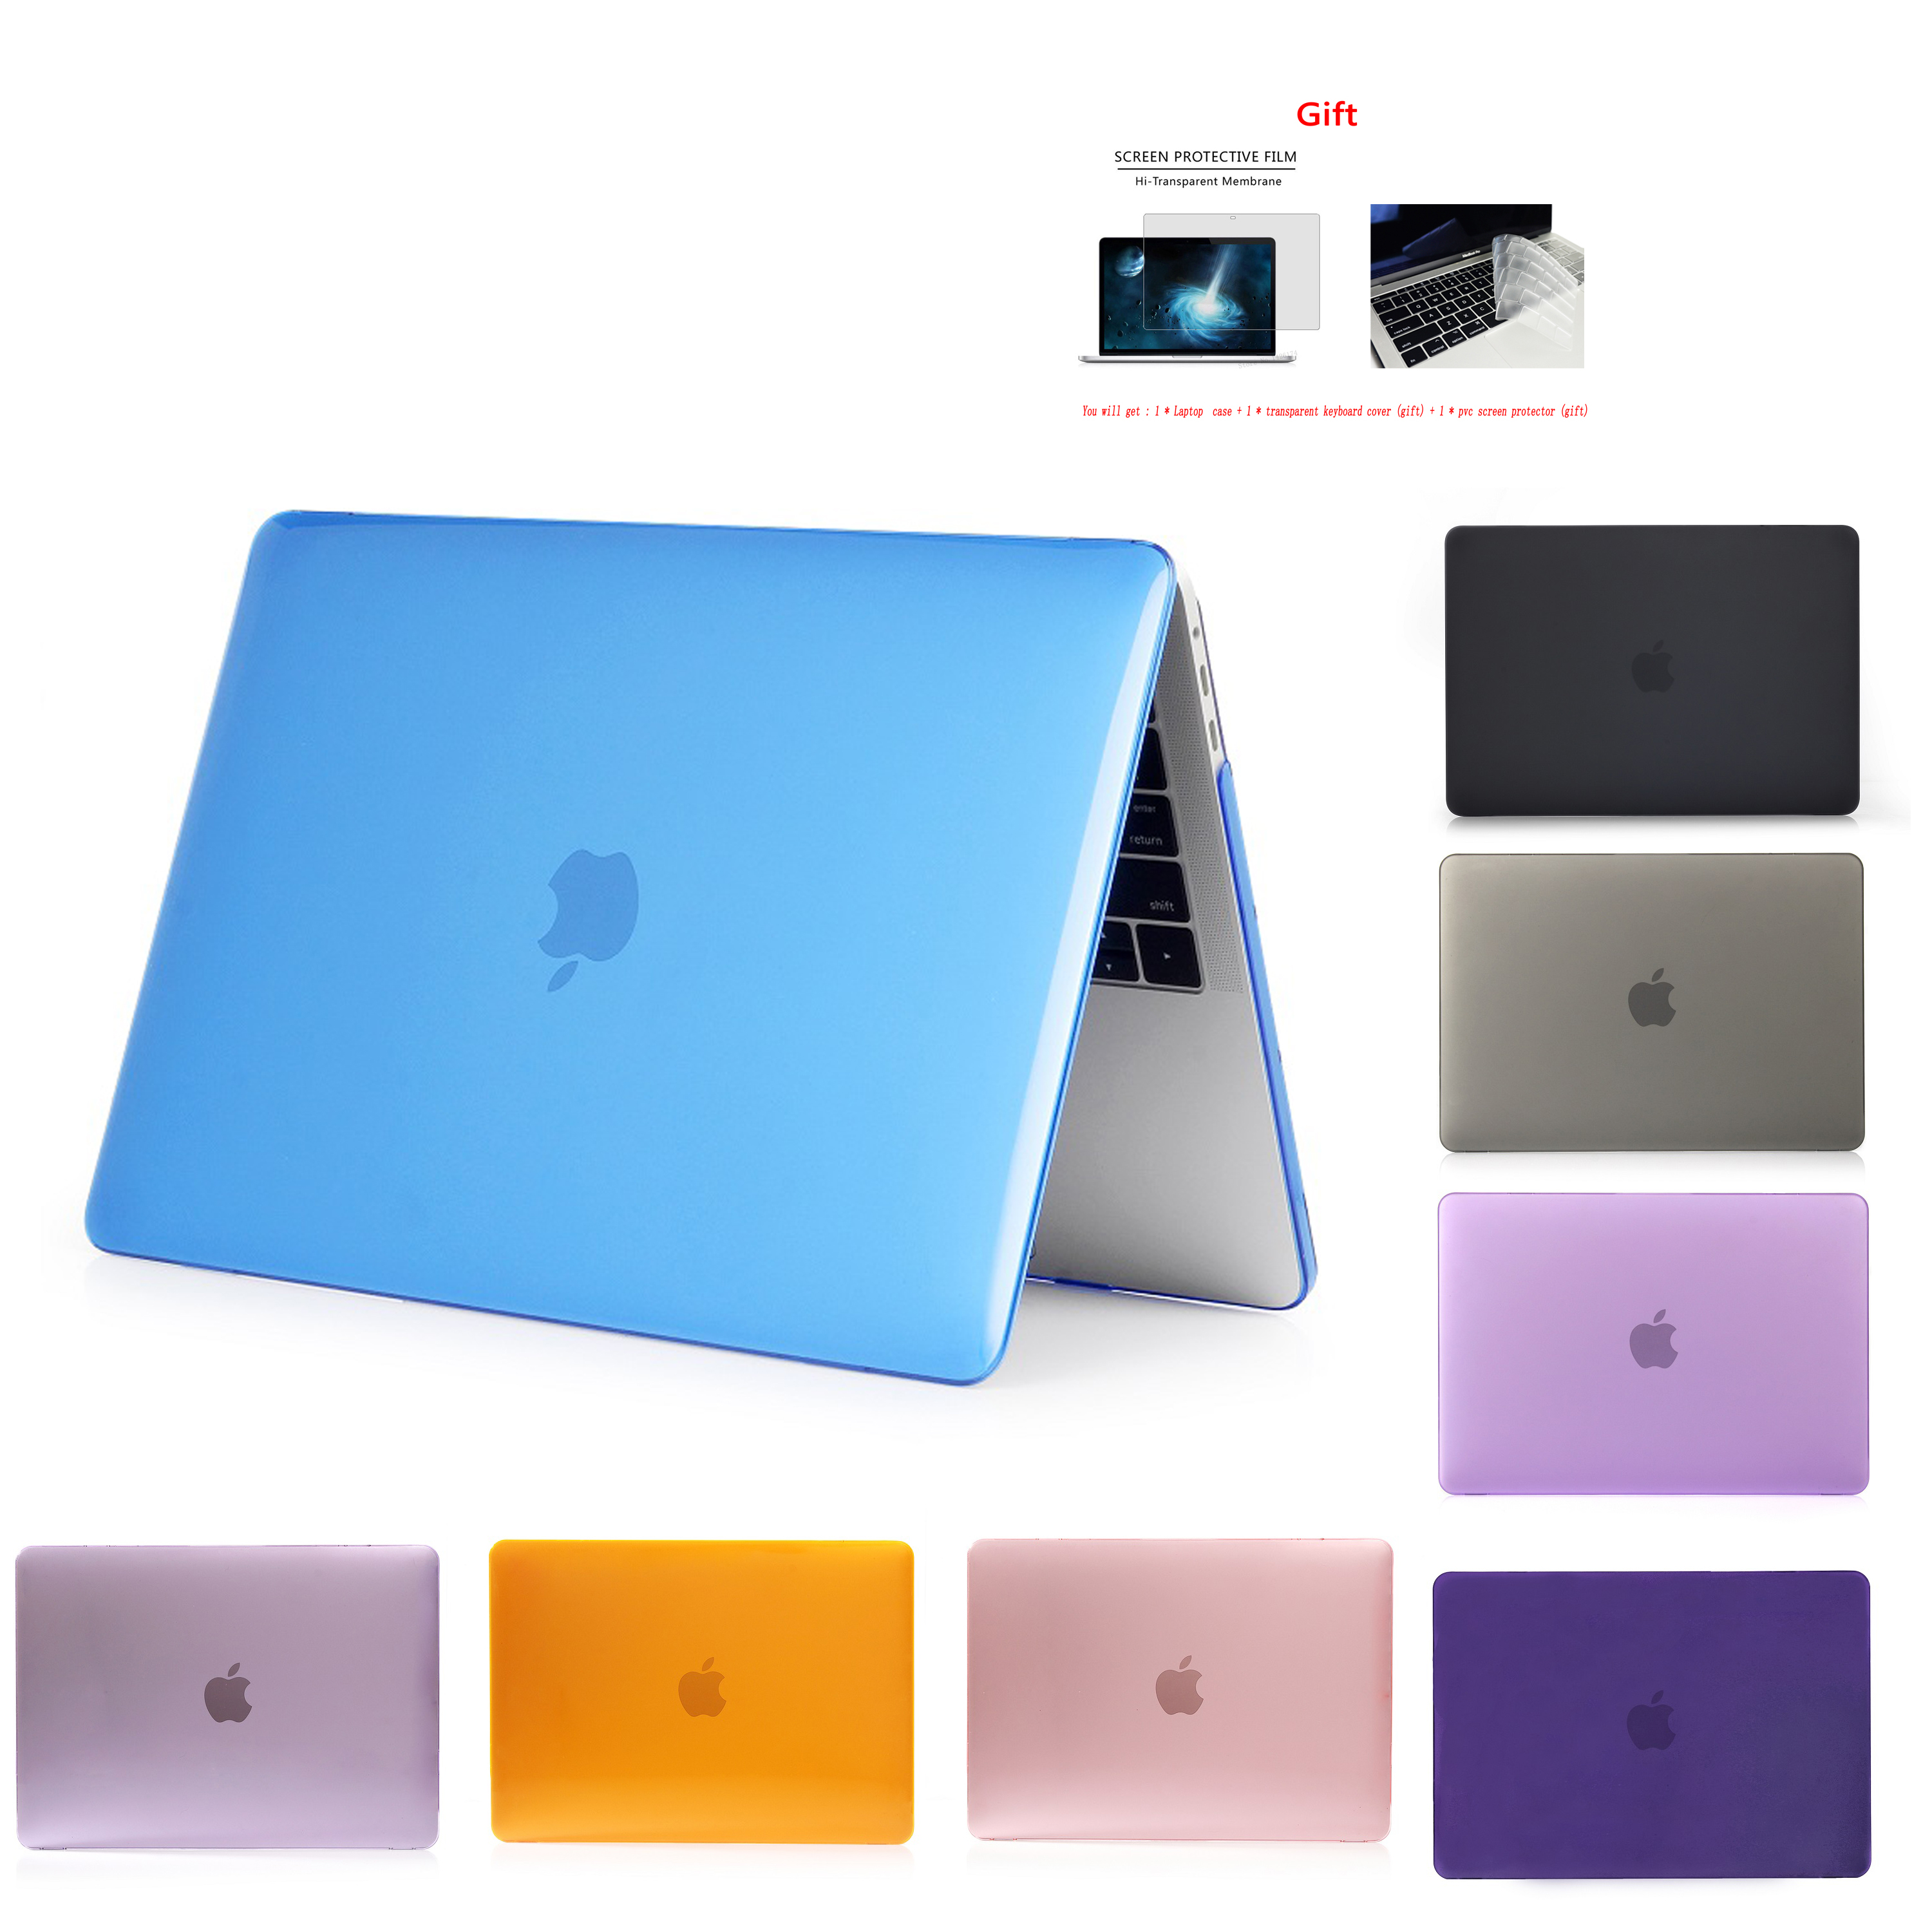 New Crystal\Matte Case For APPle MacBook Air Pro Retina 11 12 13 15 16 inch ,Case for A1466 A1932 A1708 A1706 A2159 A2179 +gift(China)